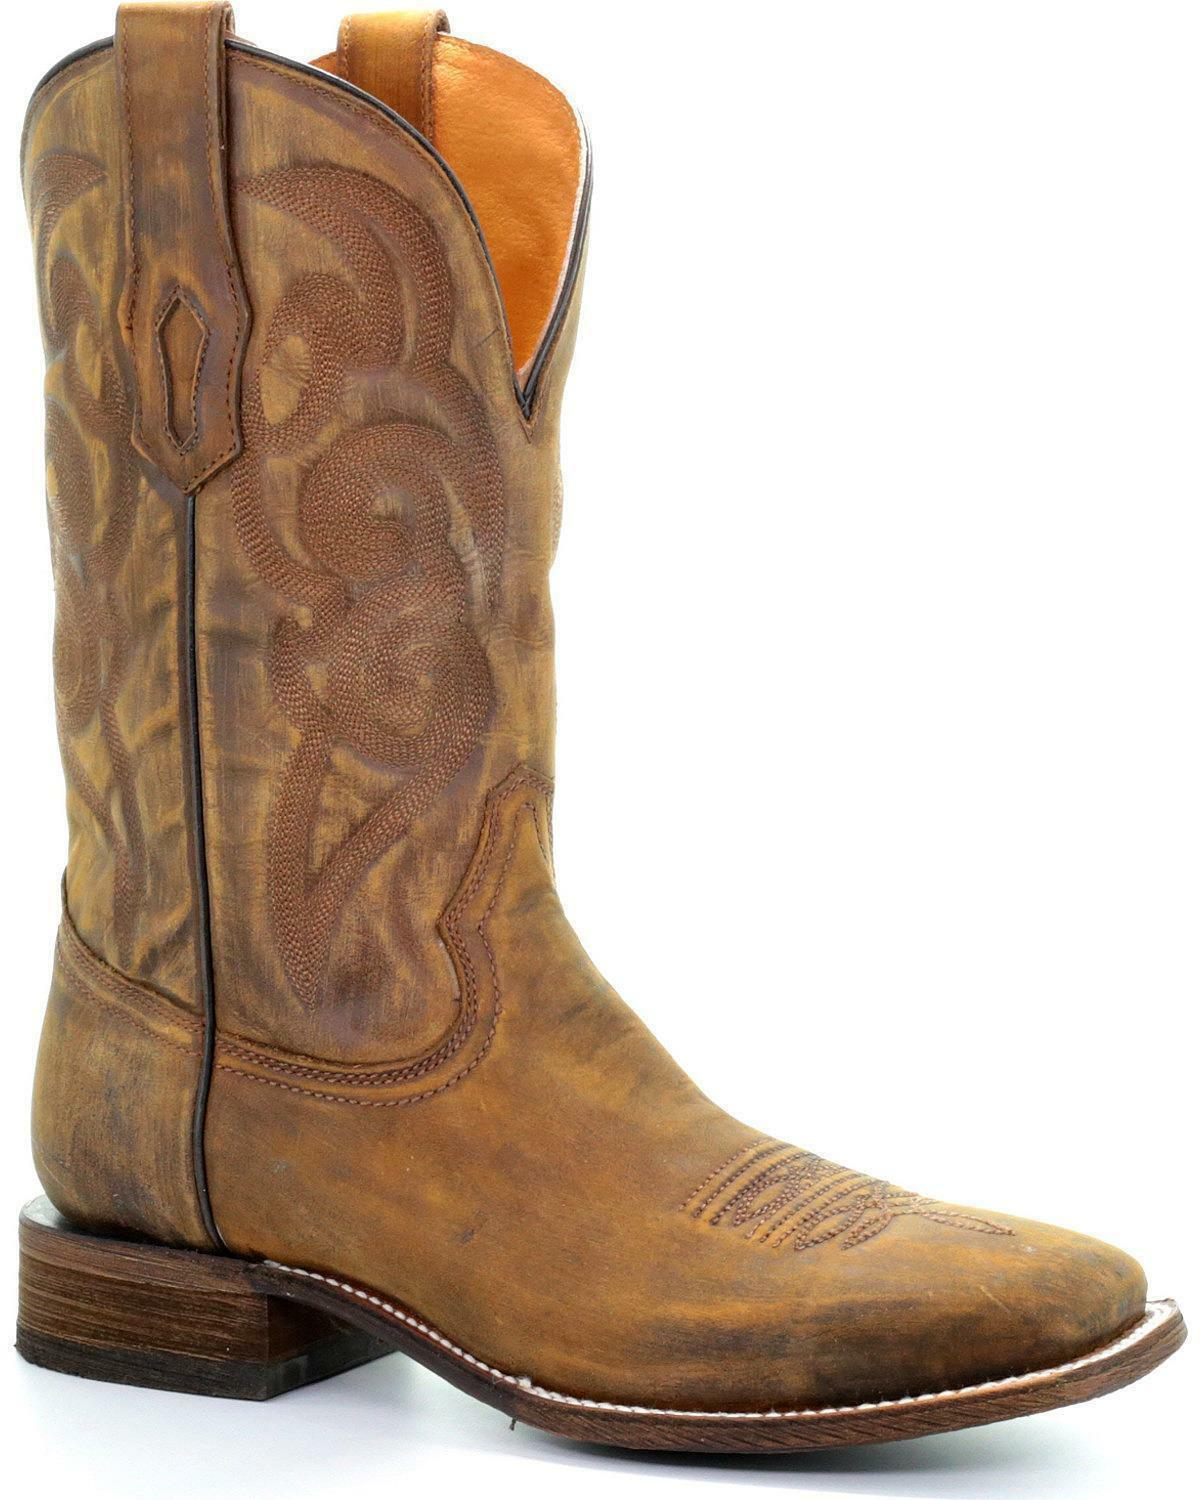 Corral Men's Golden Embroidery Cowboy Boot - Square Toe - A3302